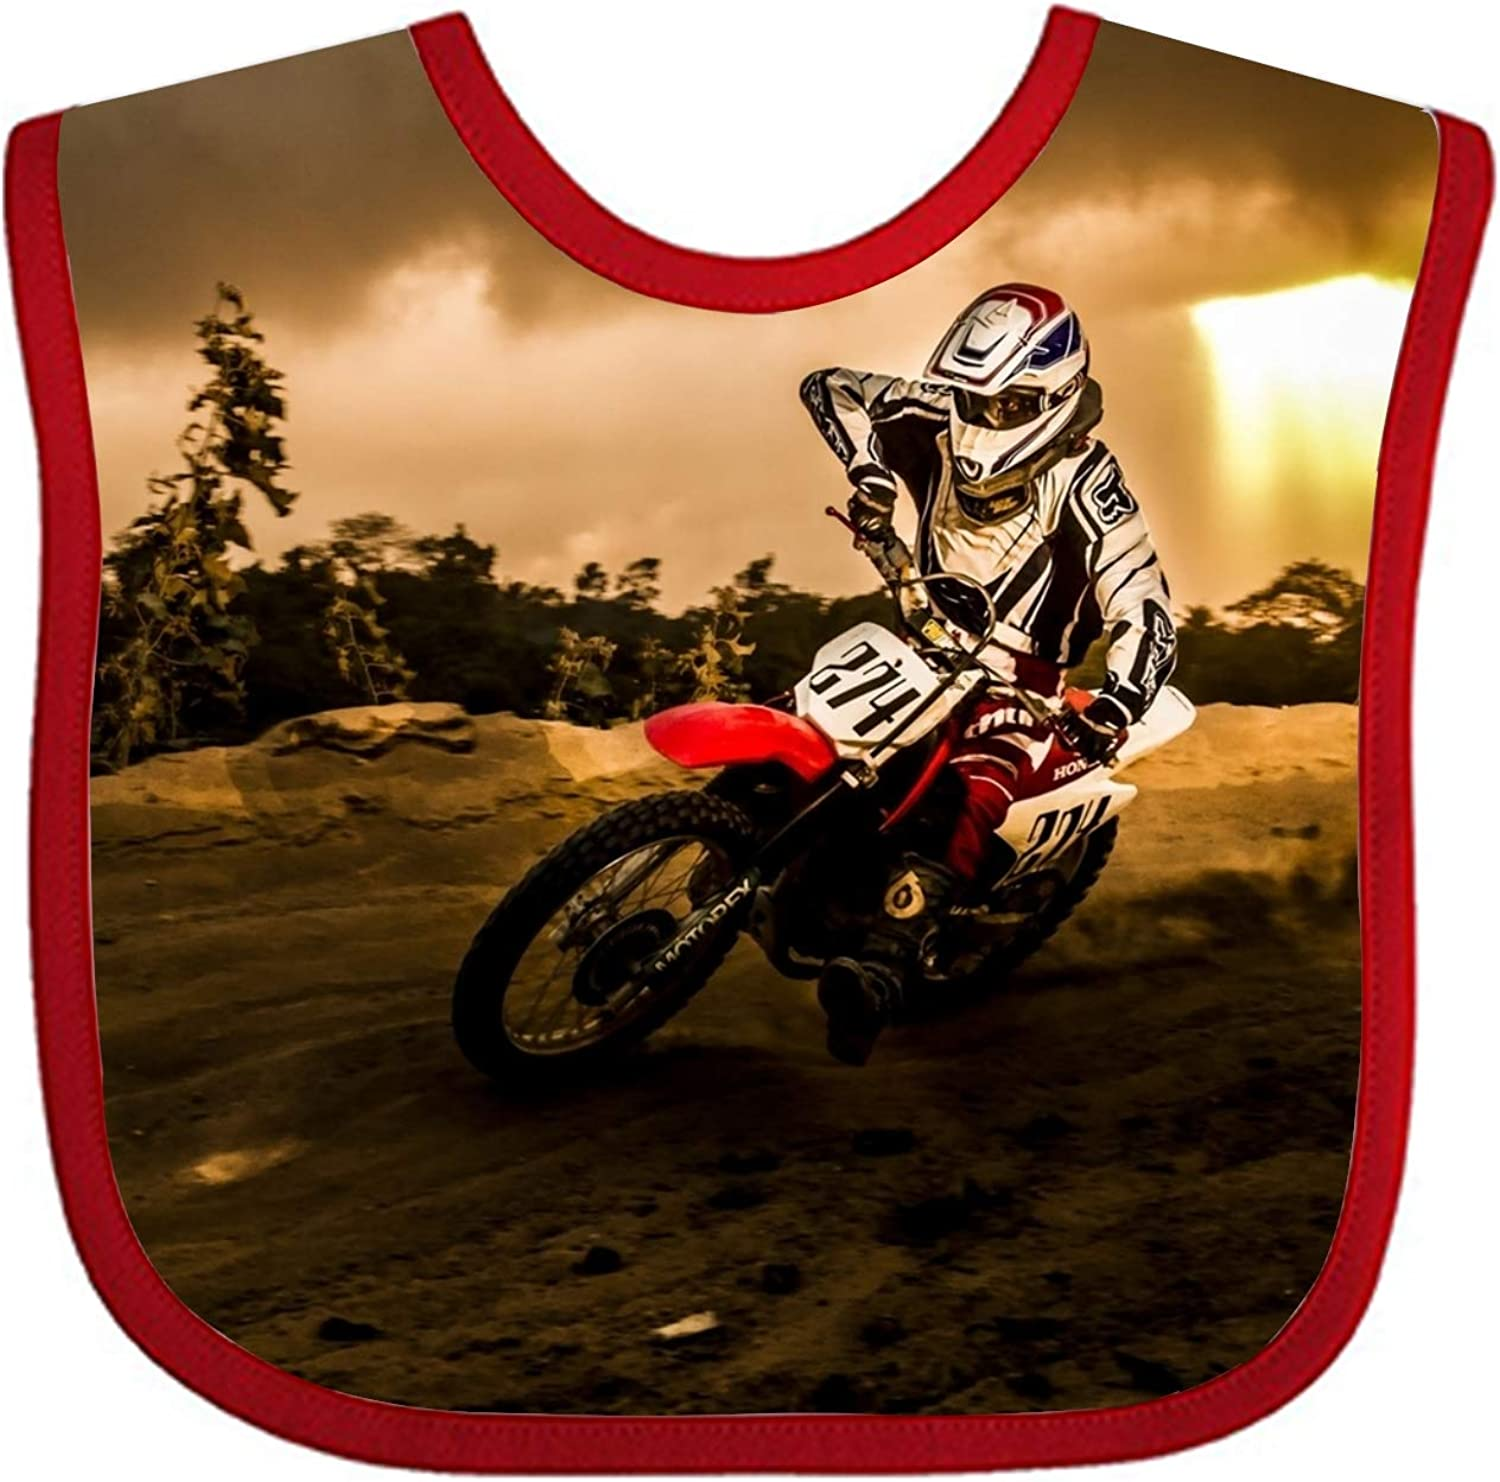 Dirt Biking Motocross Future Dirt Biker Newborn Layette 33f62 inktastic